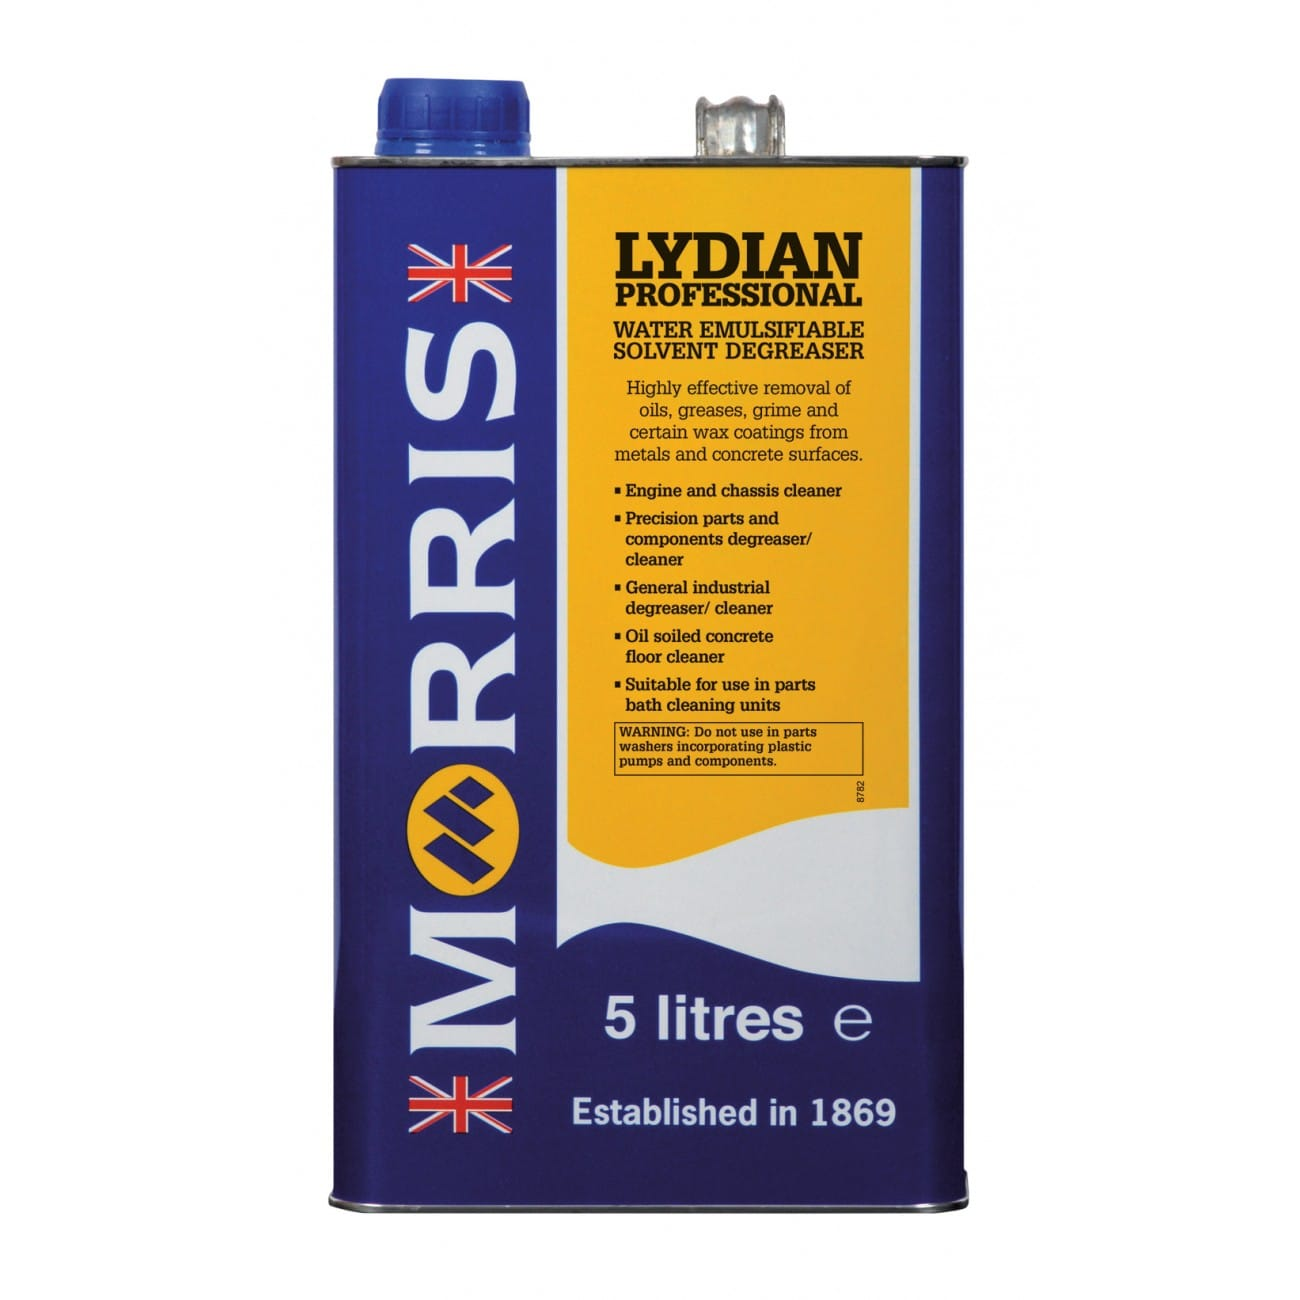 Lydian Degreasing Fluid